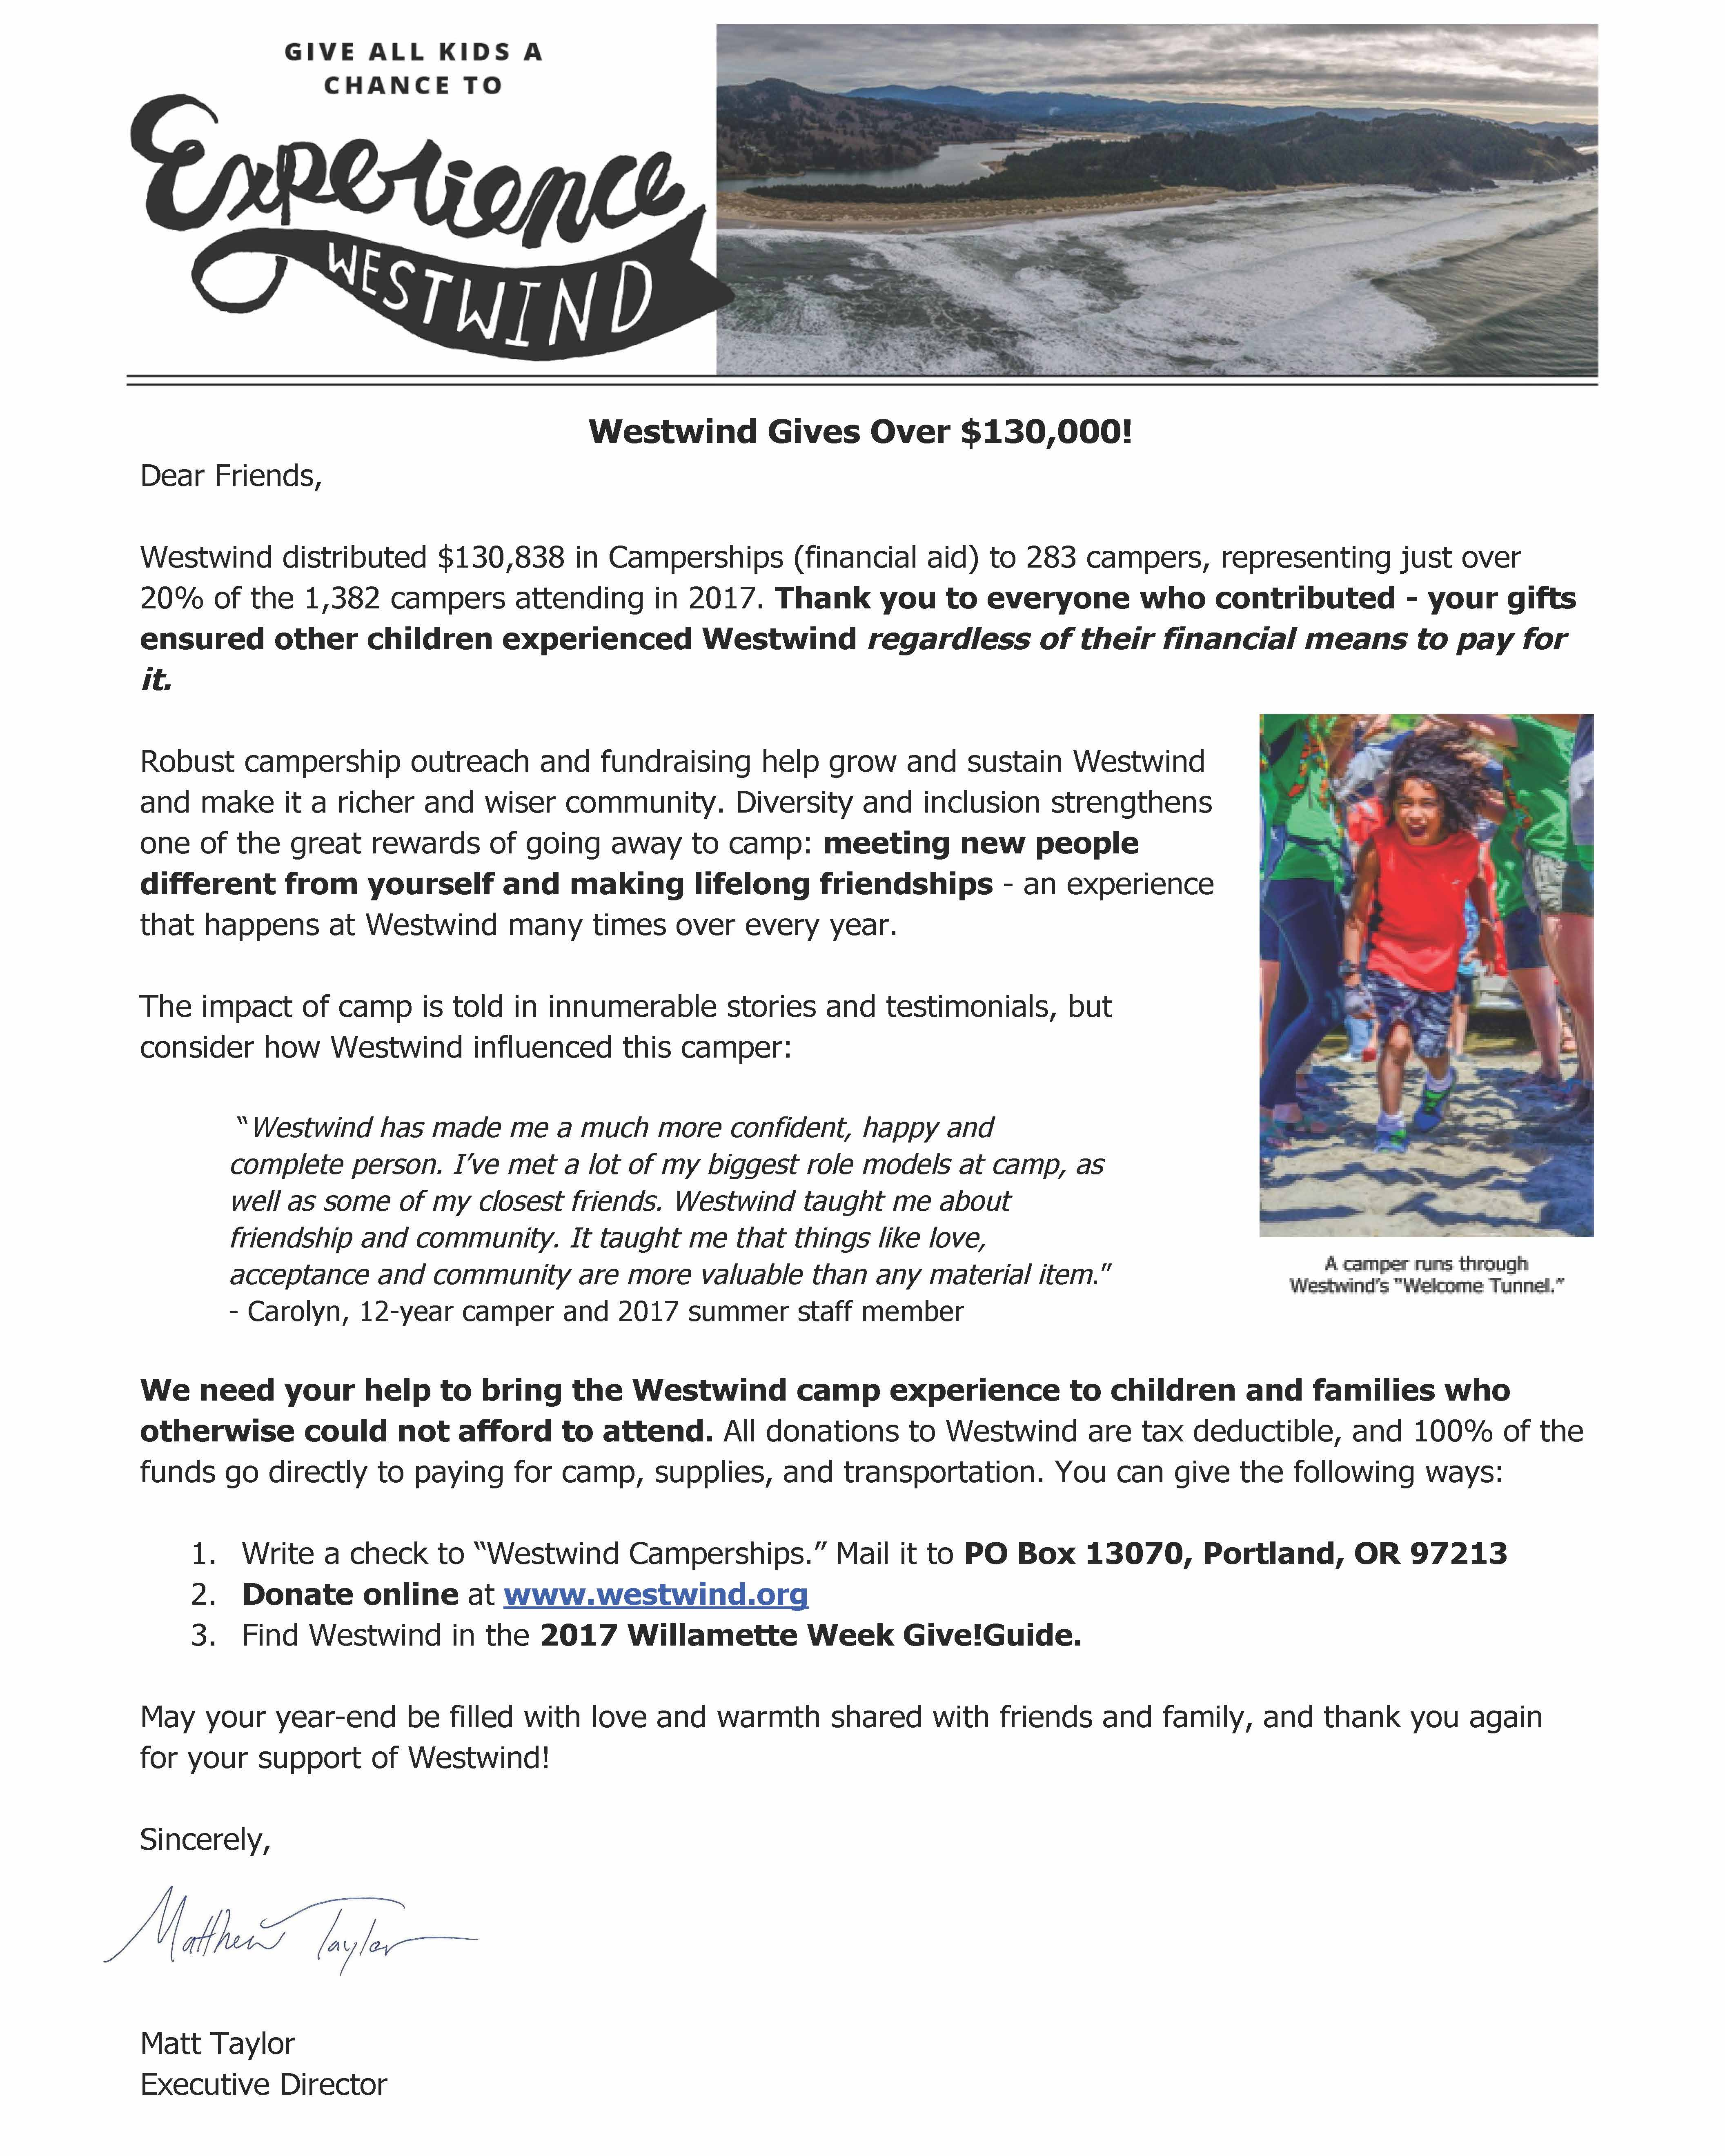 2017 Westwind End of Year Appeal Letter   Westwind